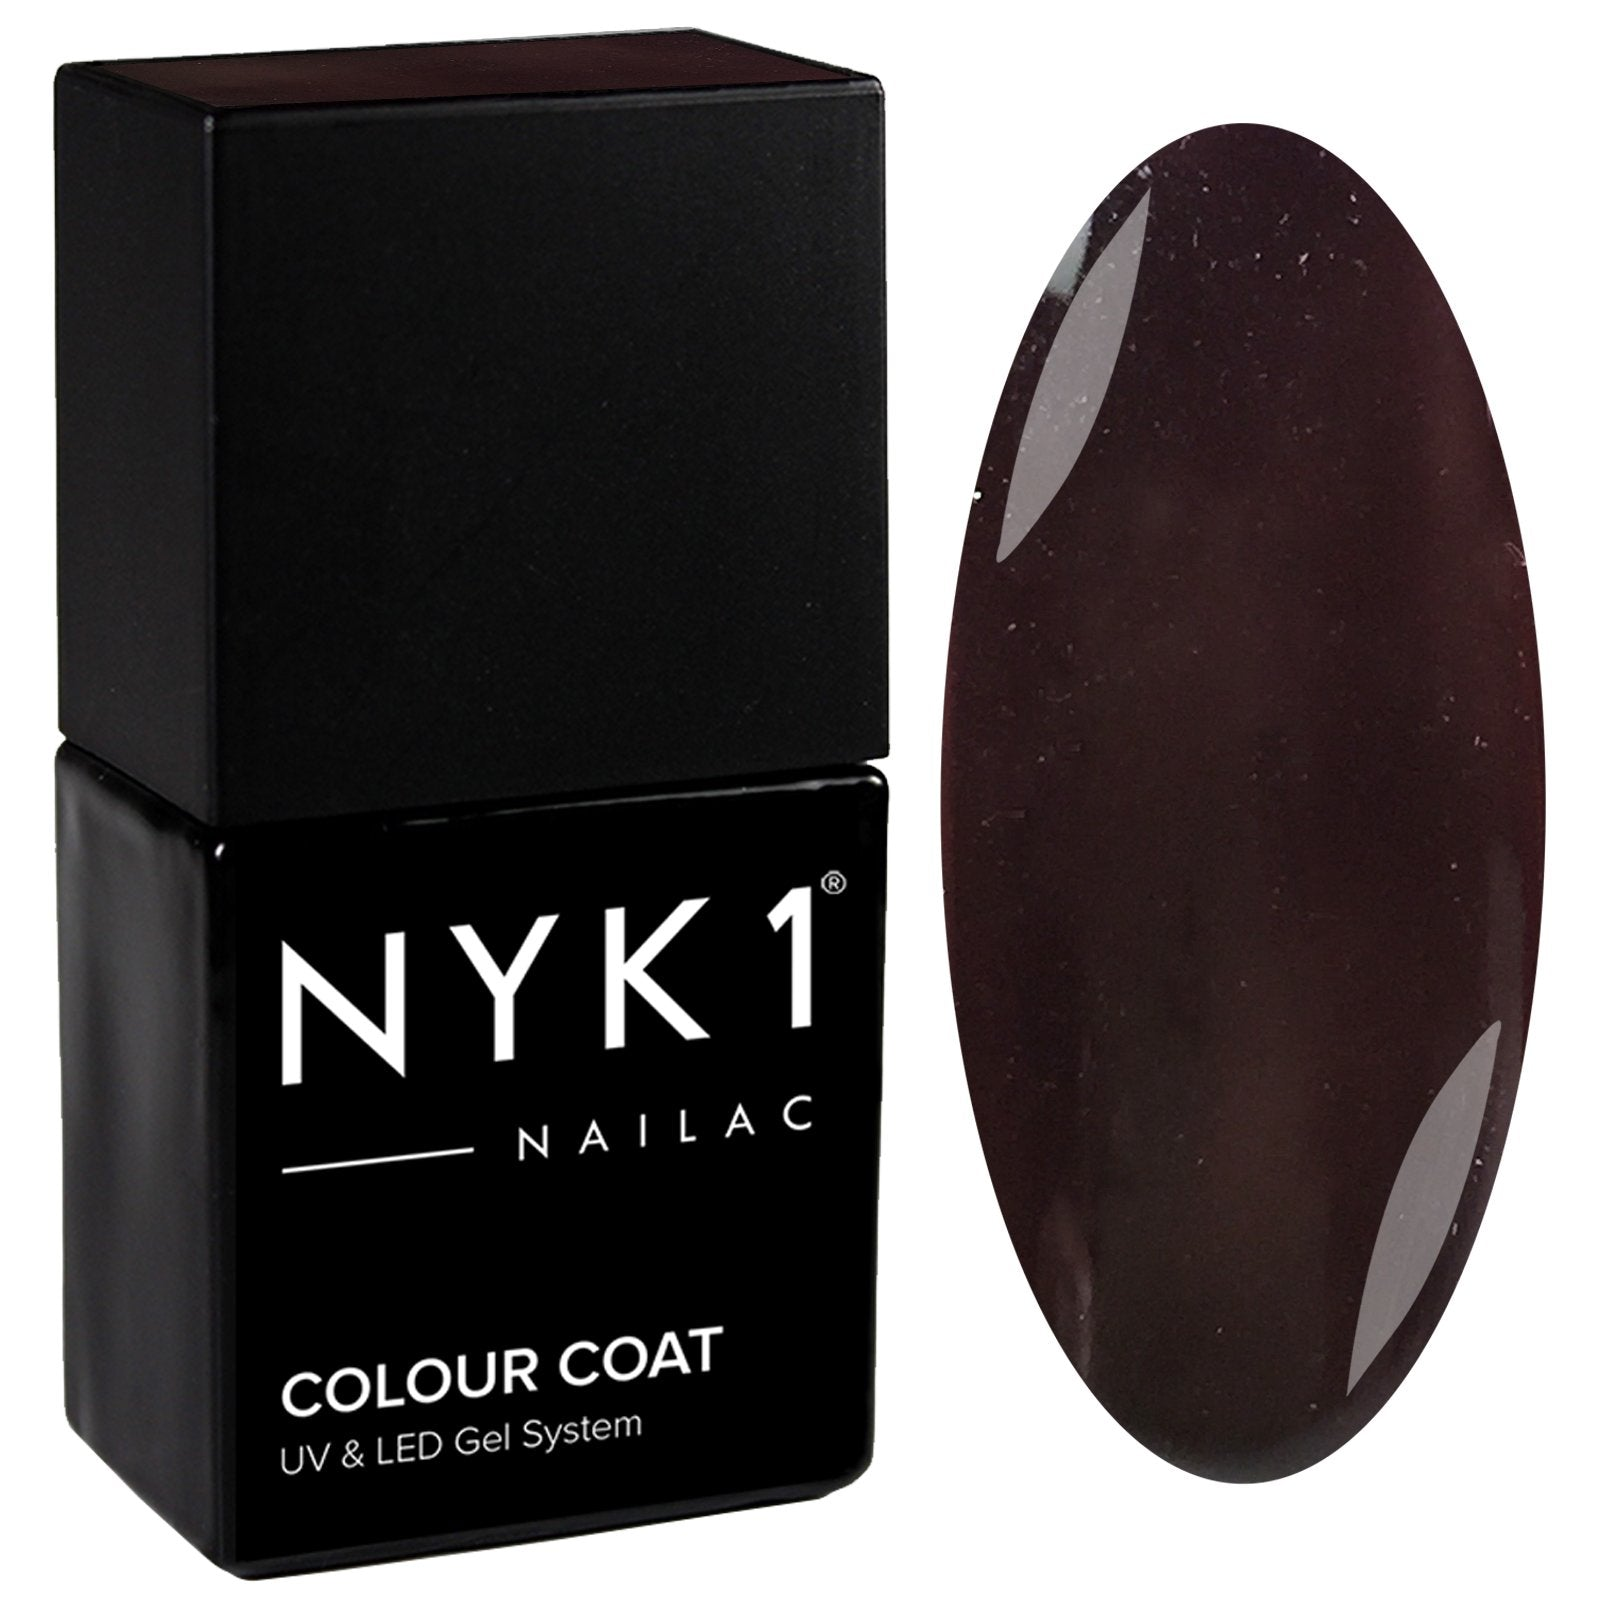 NYK1 Nailac Femme Fatale Dark Brown Gel Nail Polish